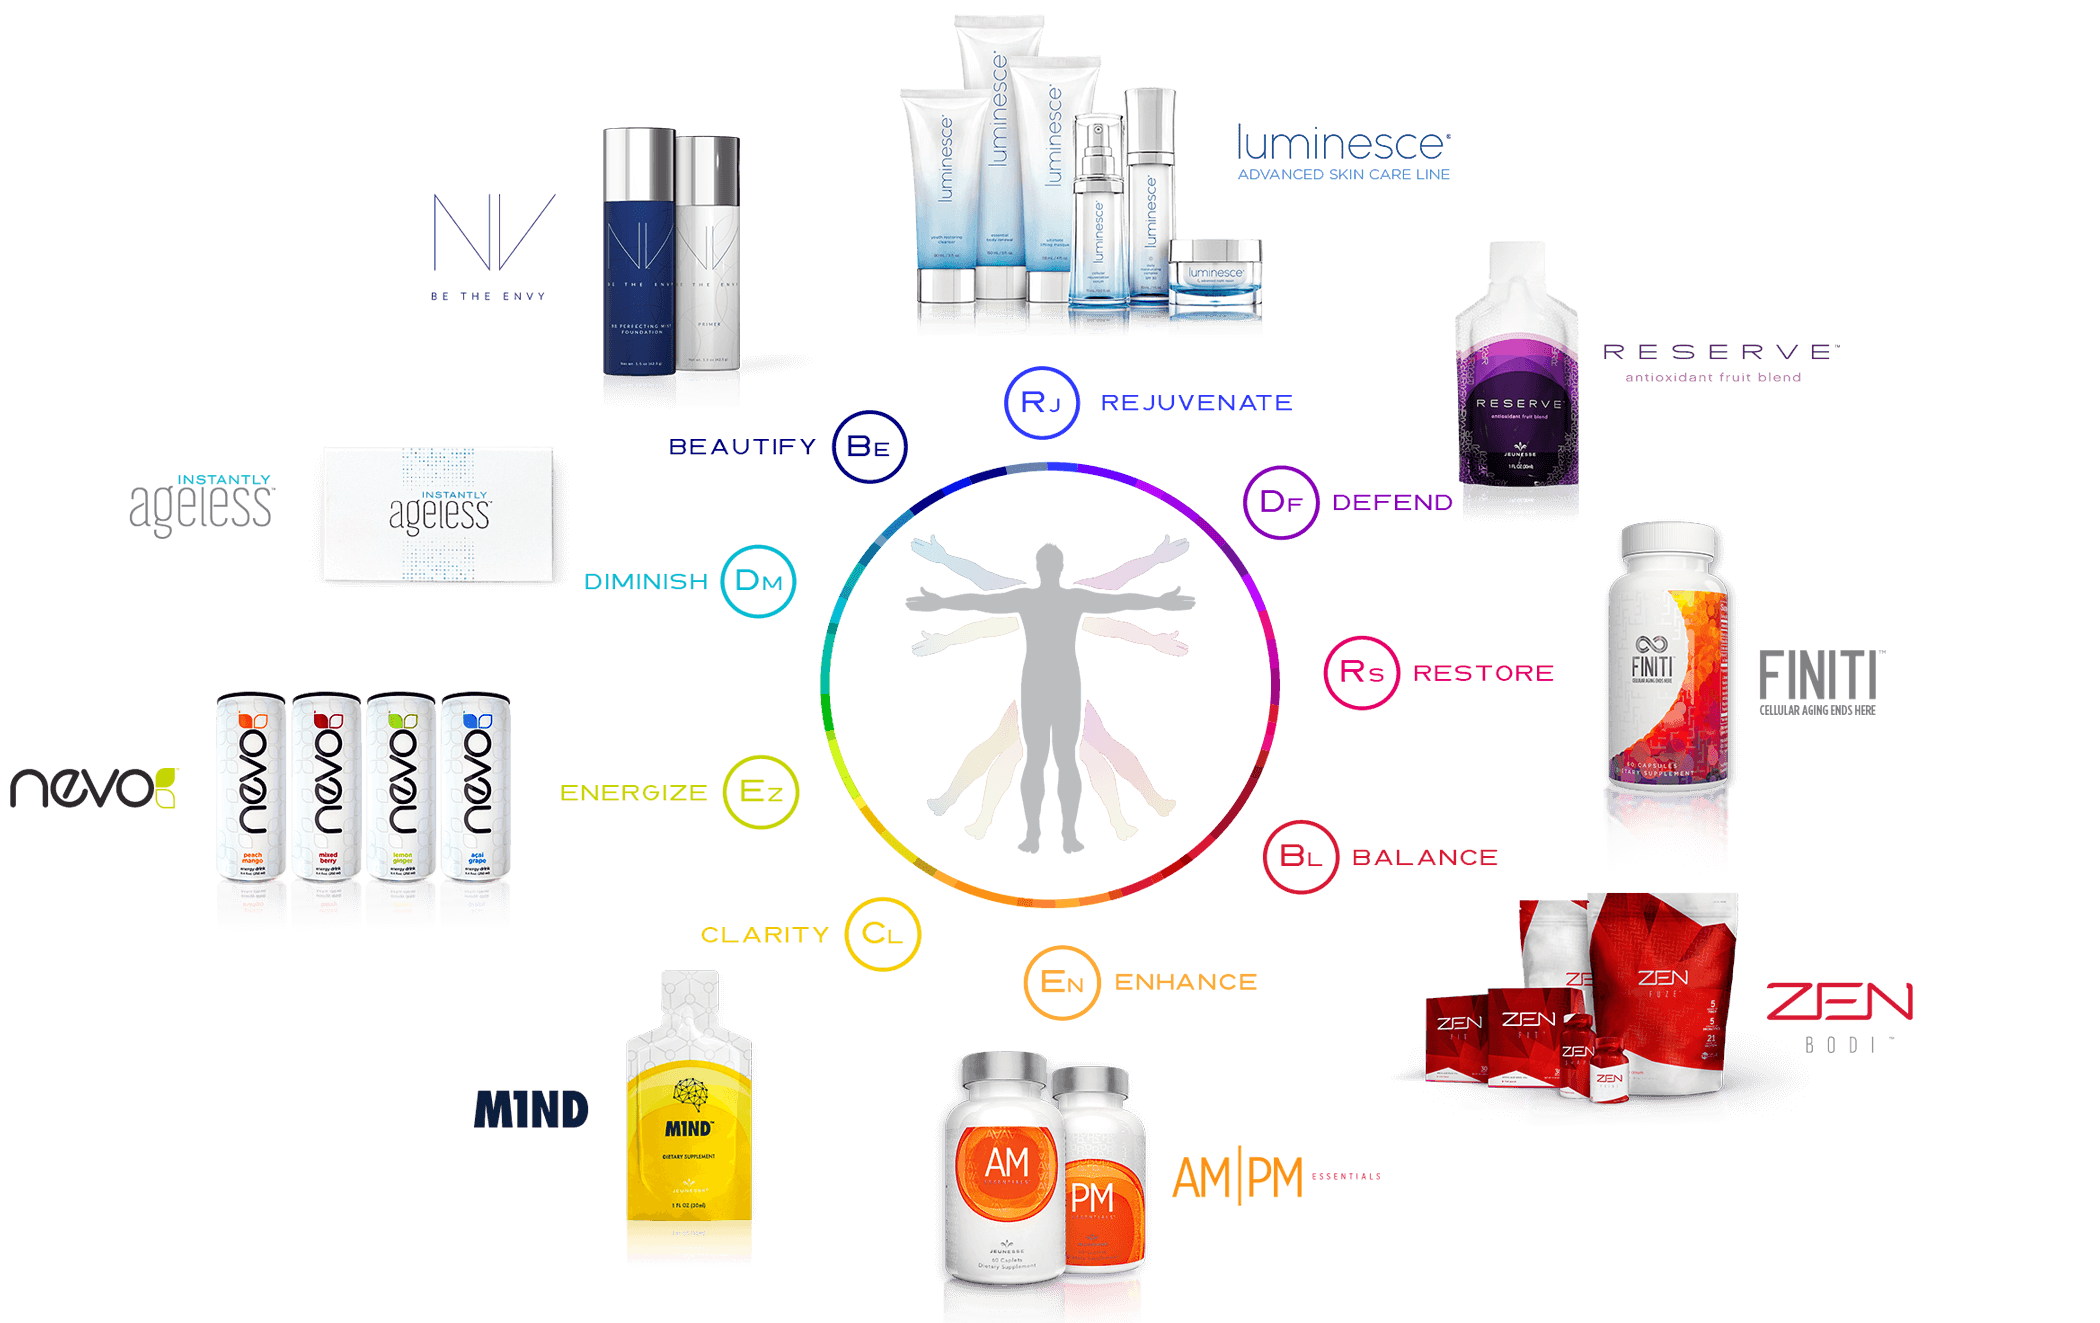 Jeunesse Global YES system